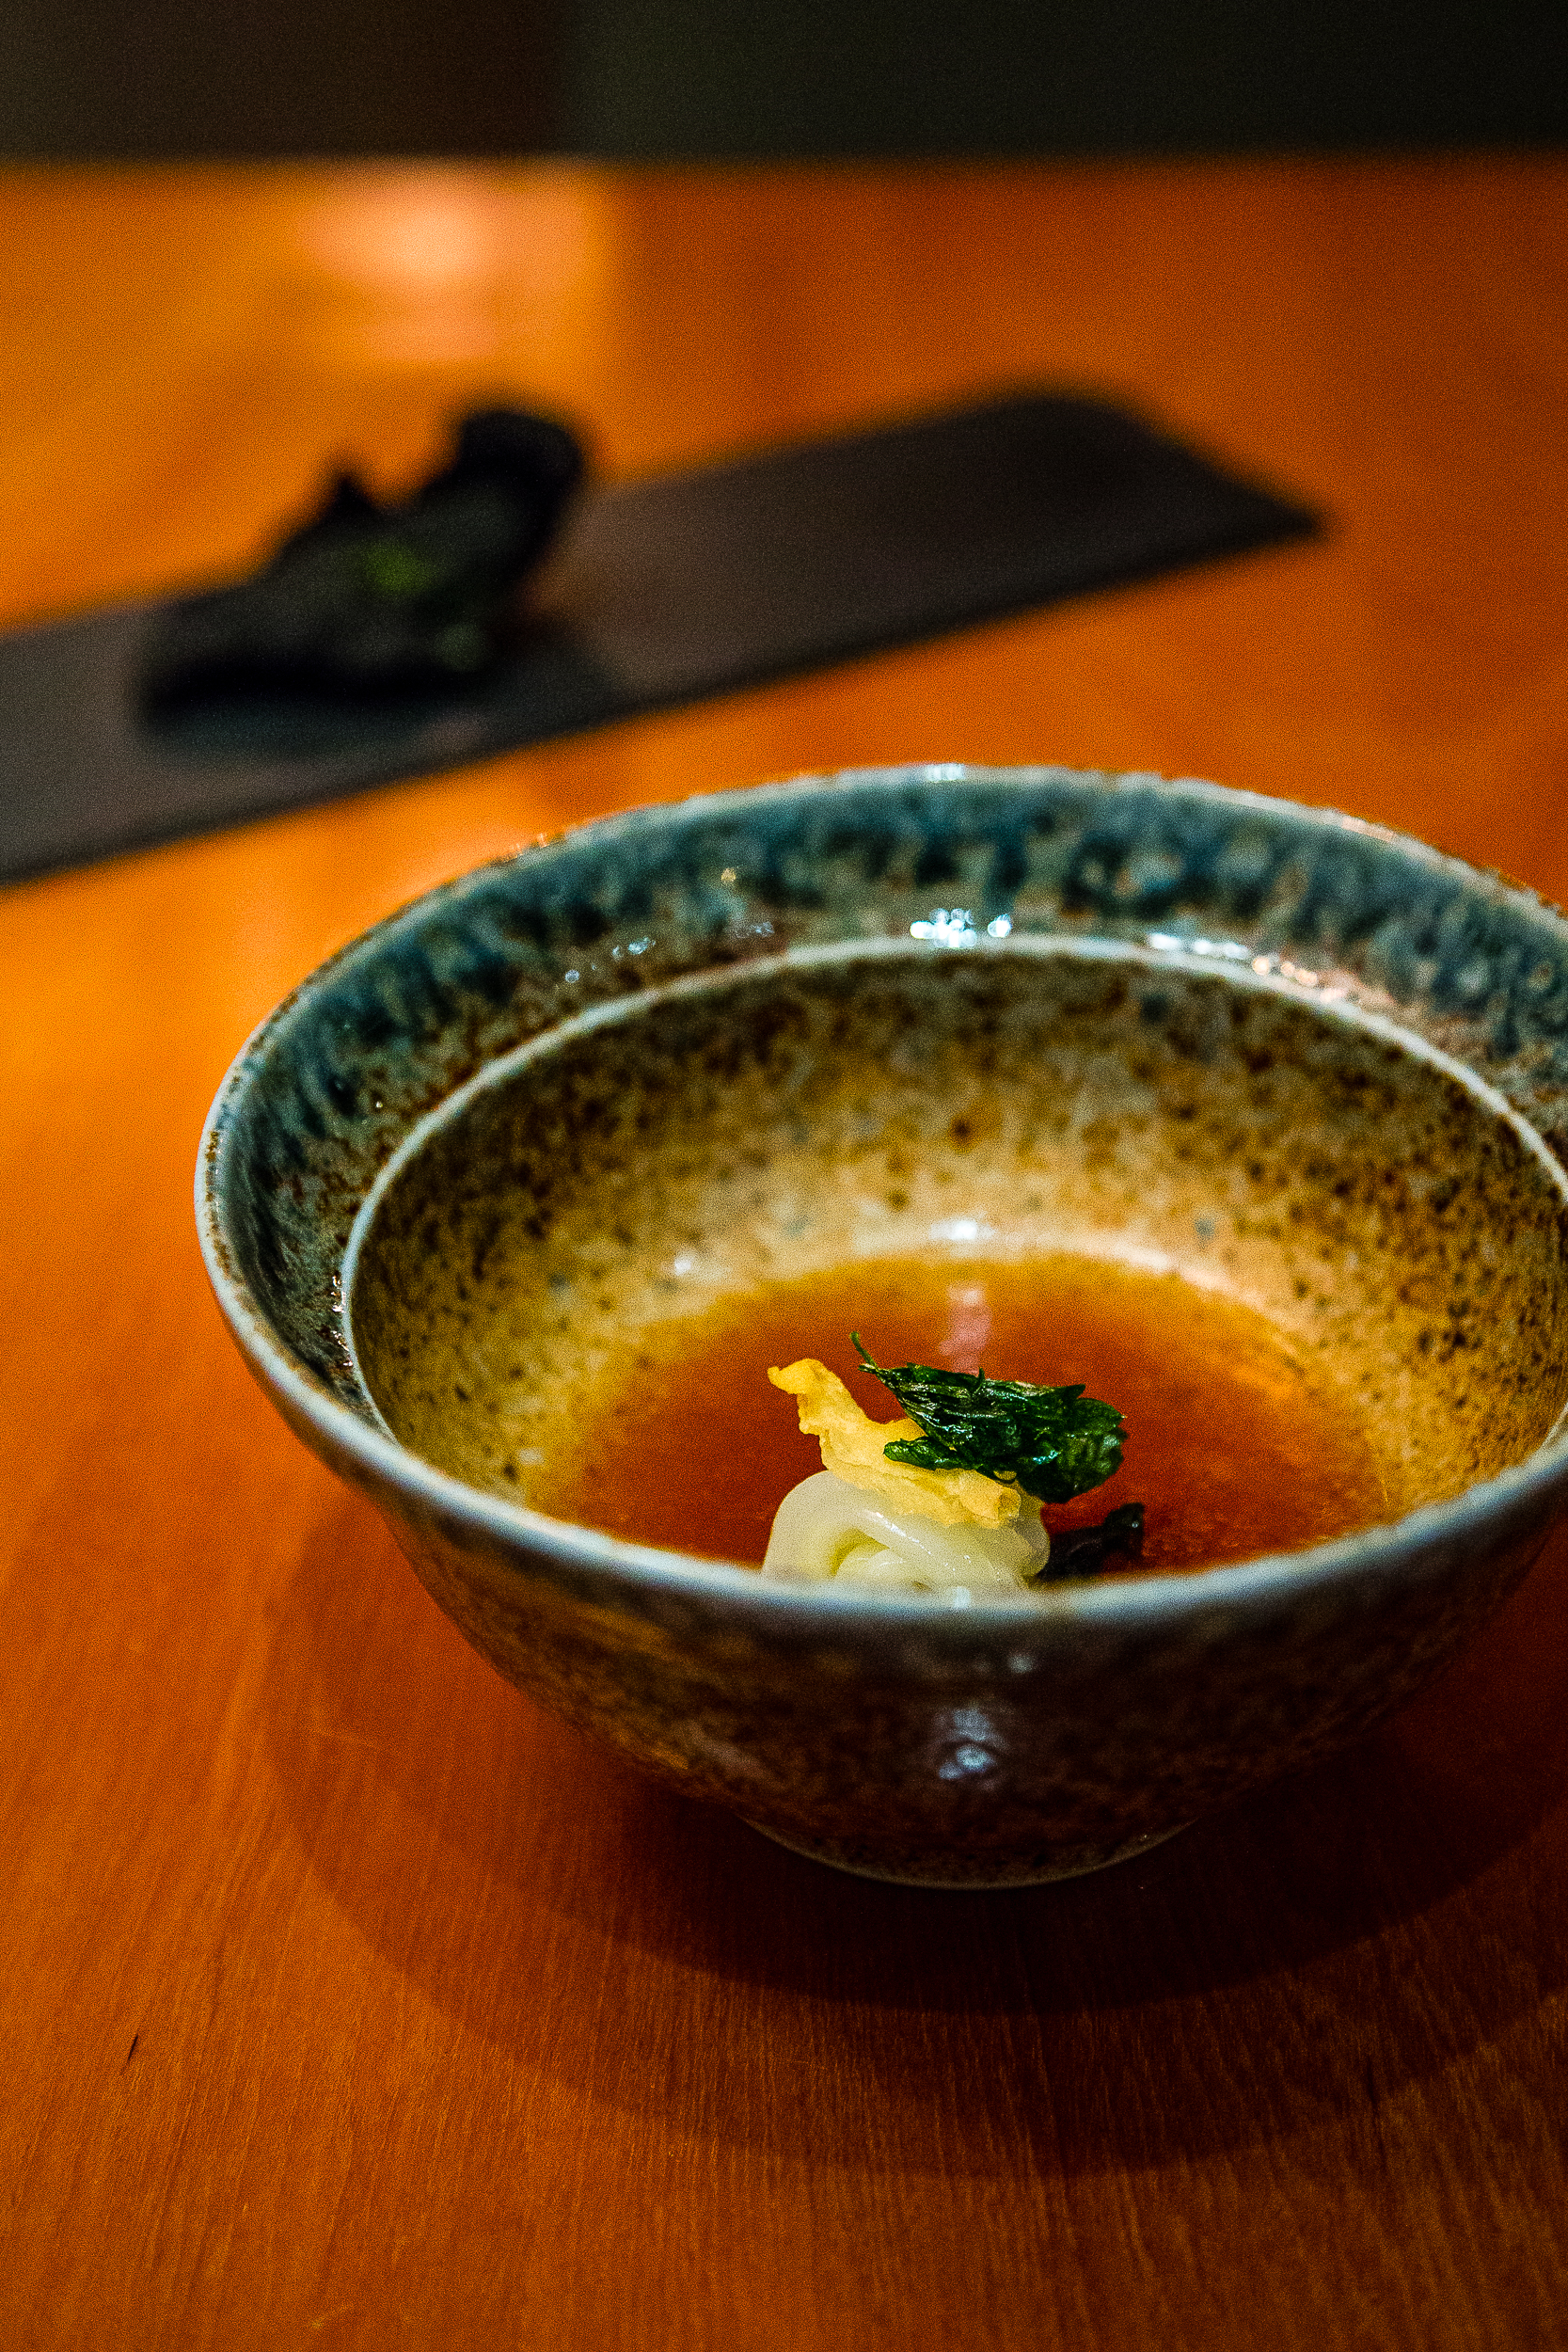 Squid Ink Rice Cracker, Seaweed Powder-Cured Squid with Potato Mousseline and a Garlic, Mushroom Consomme